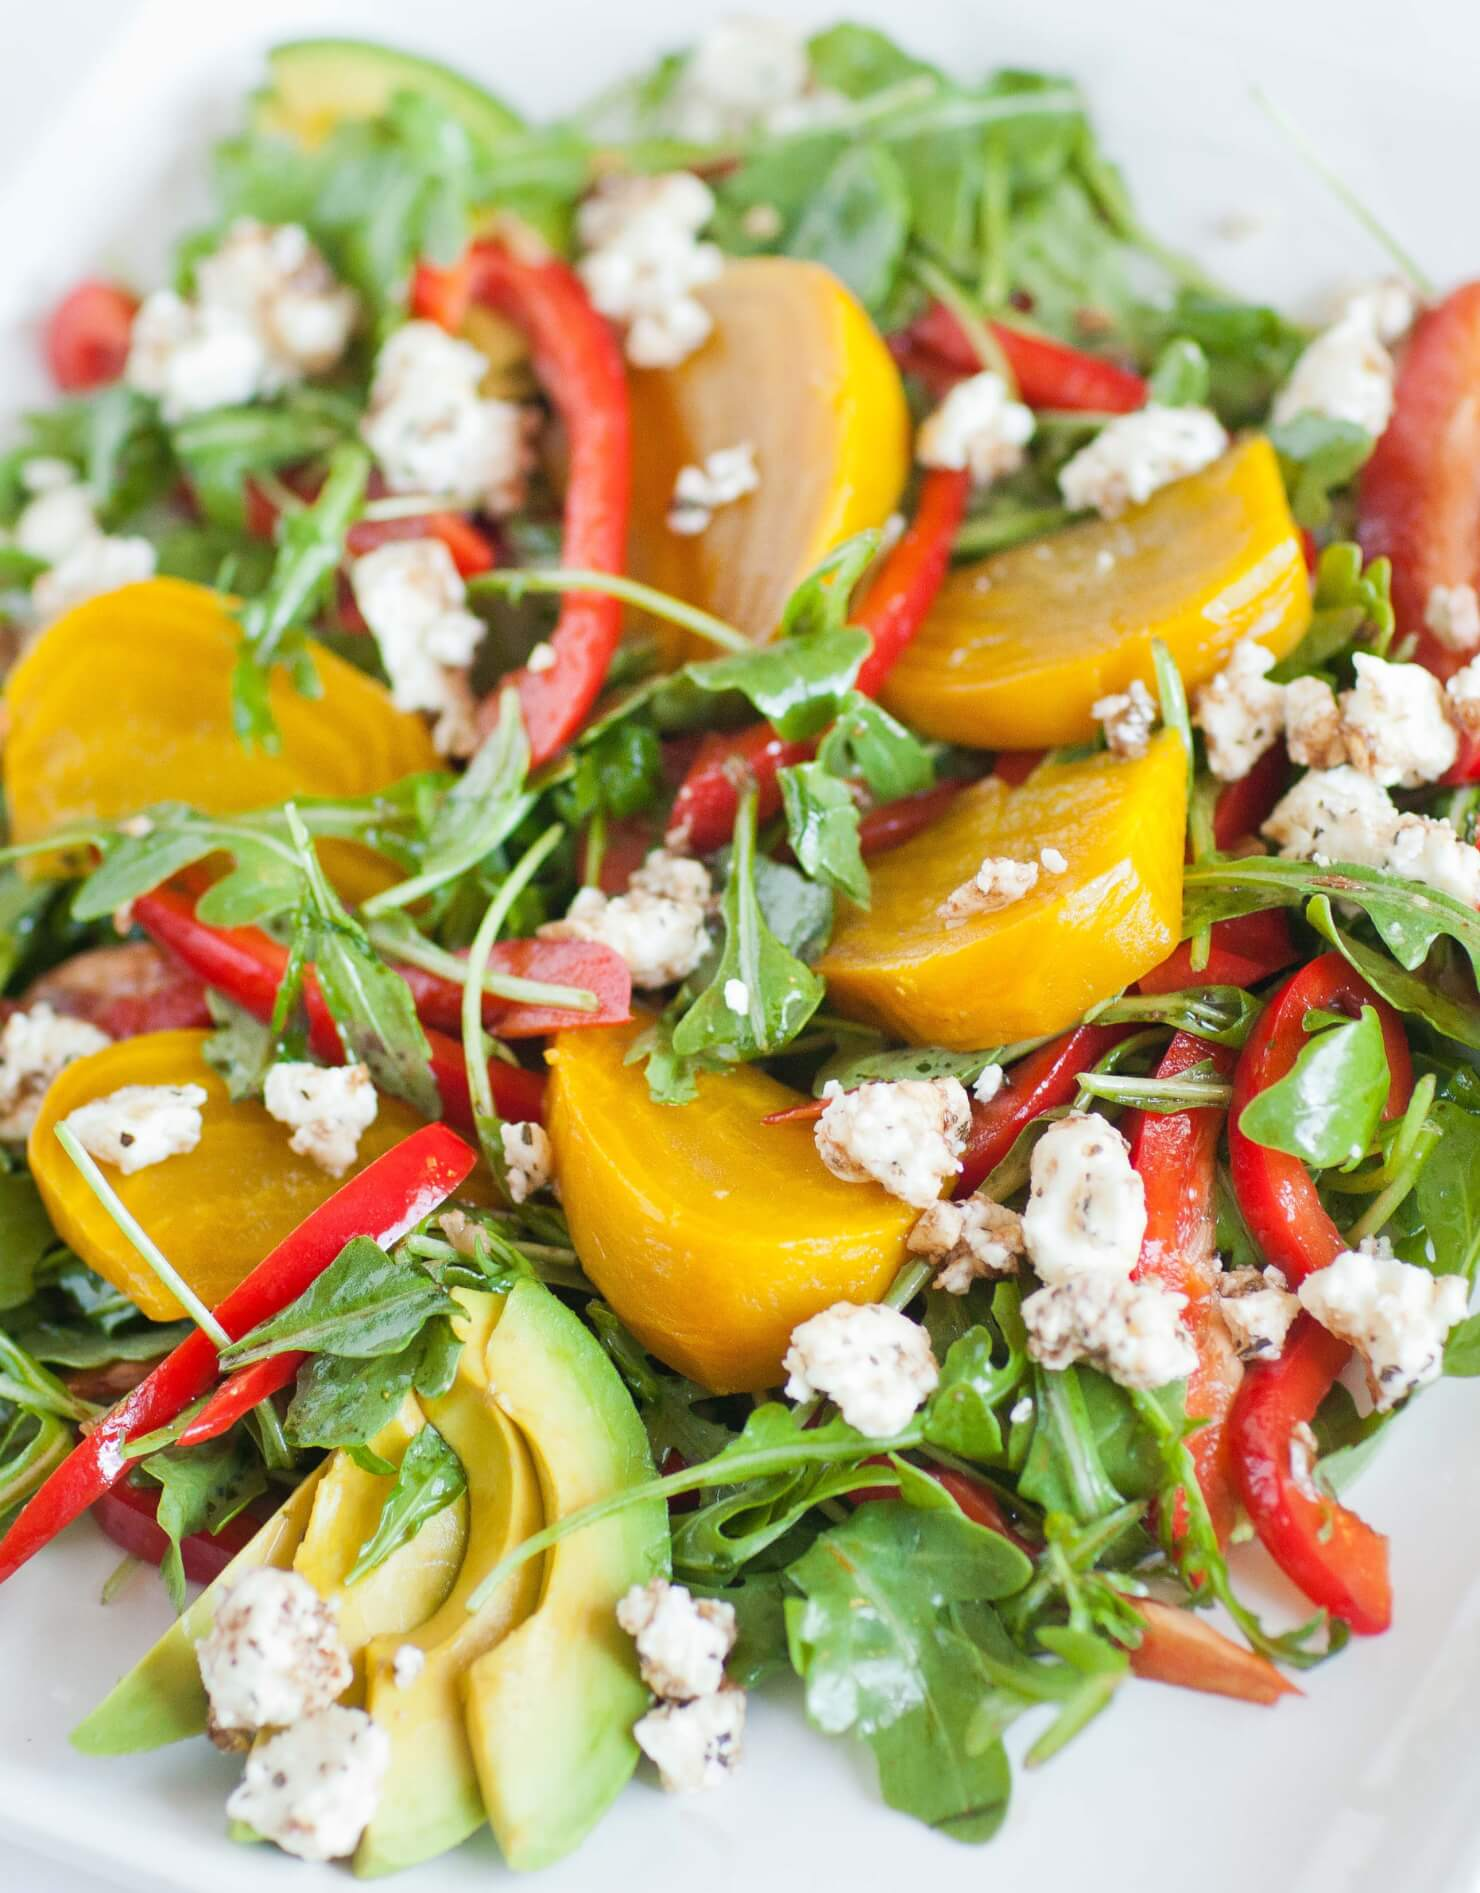 yellow beet salad with arugula